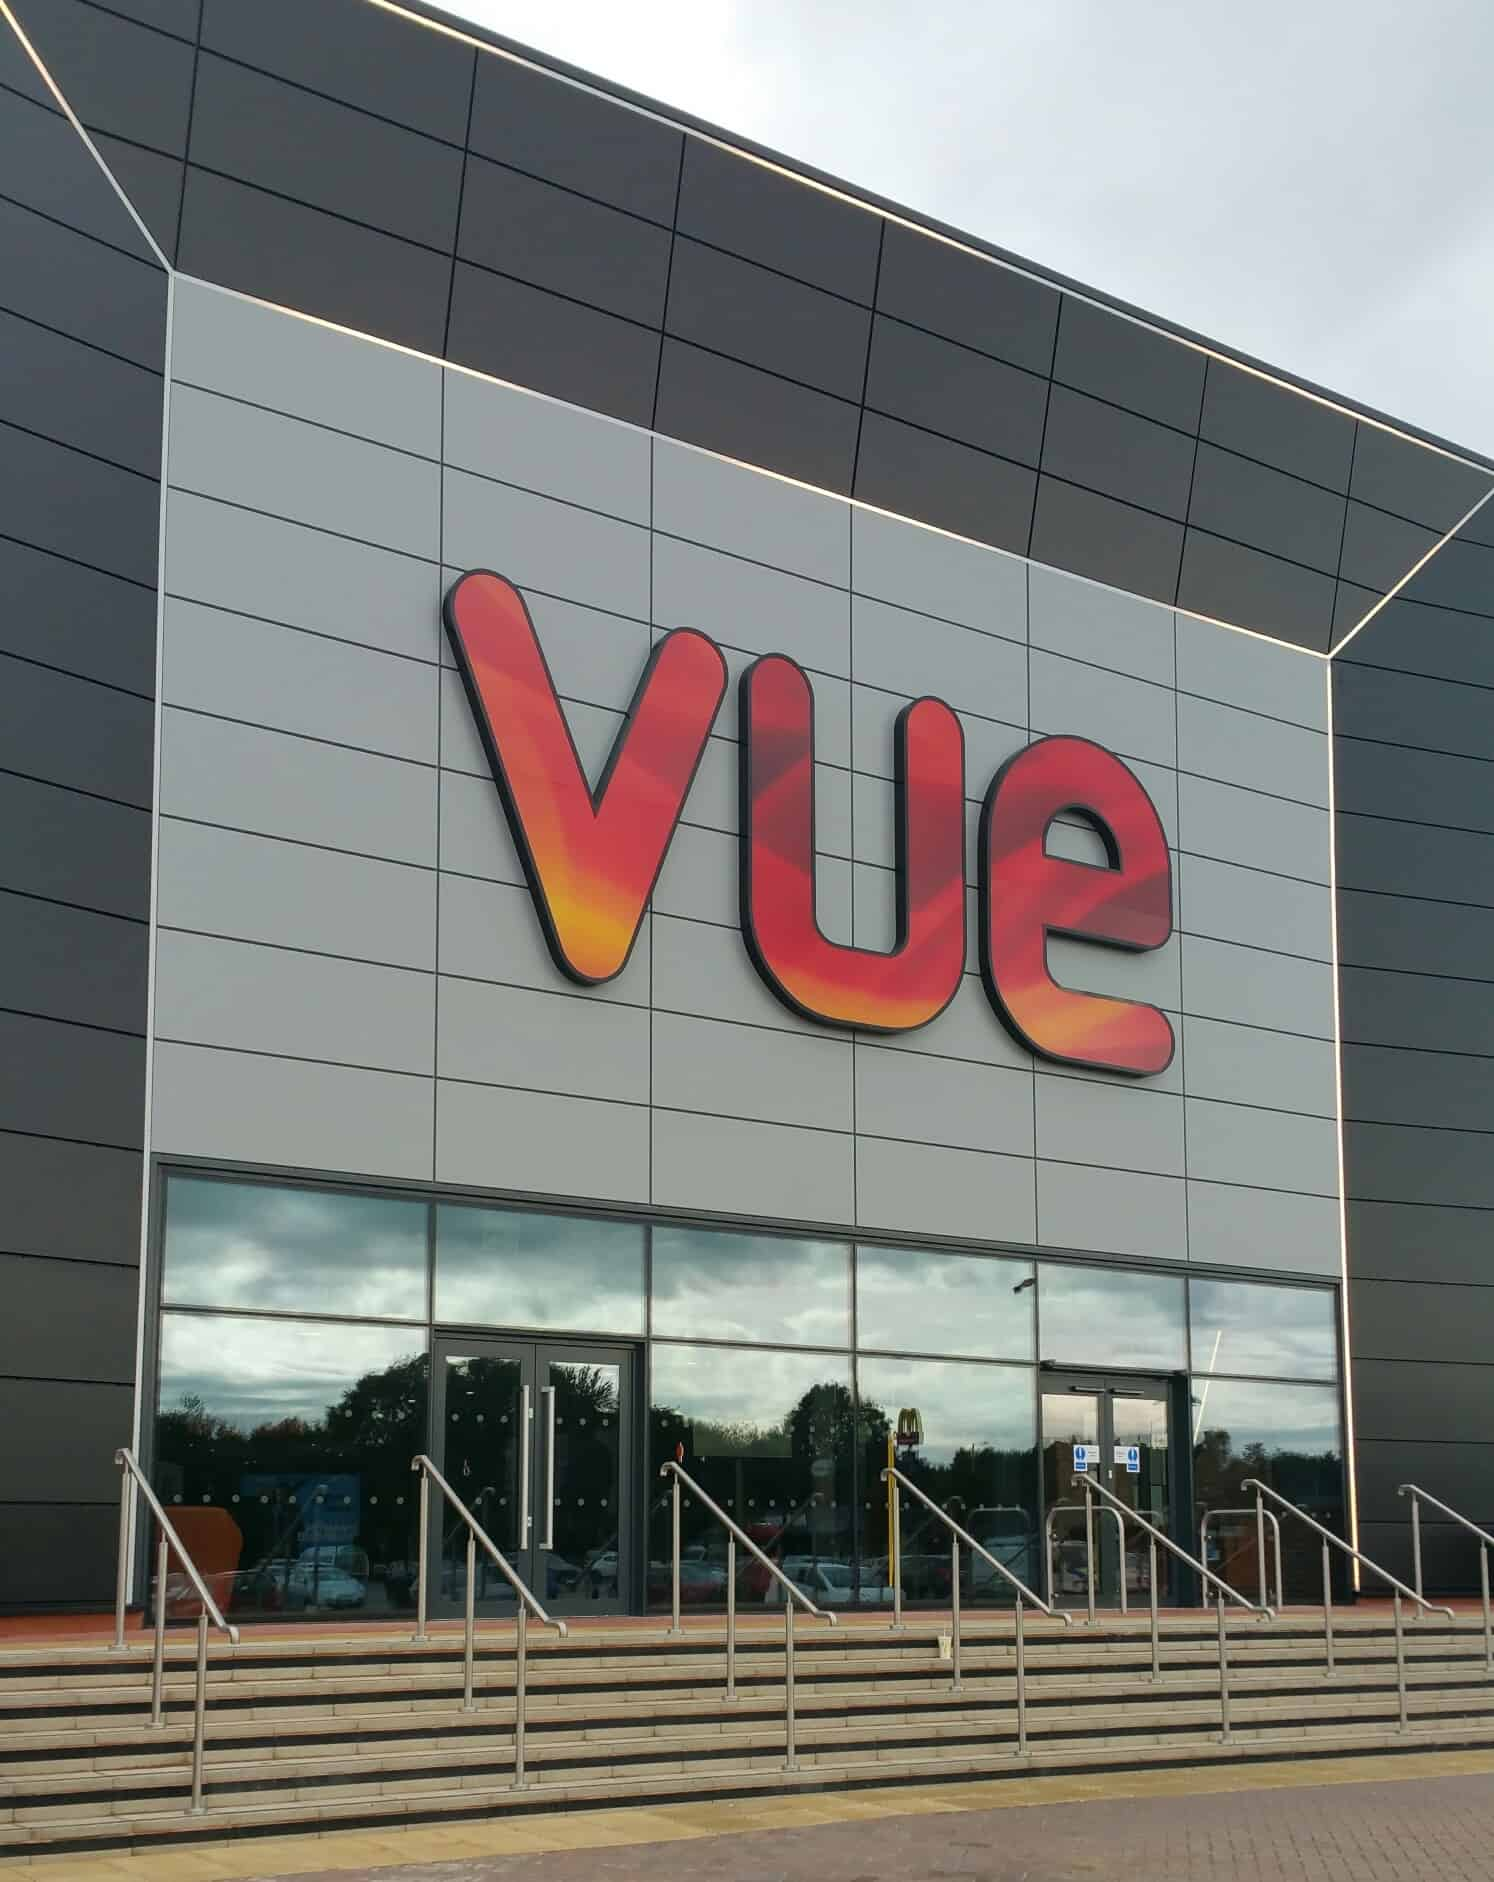 VUE cinema project